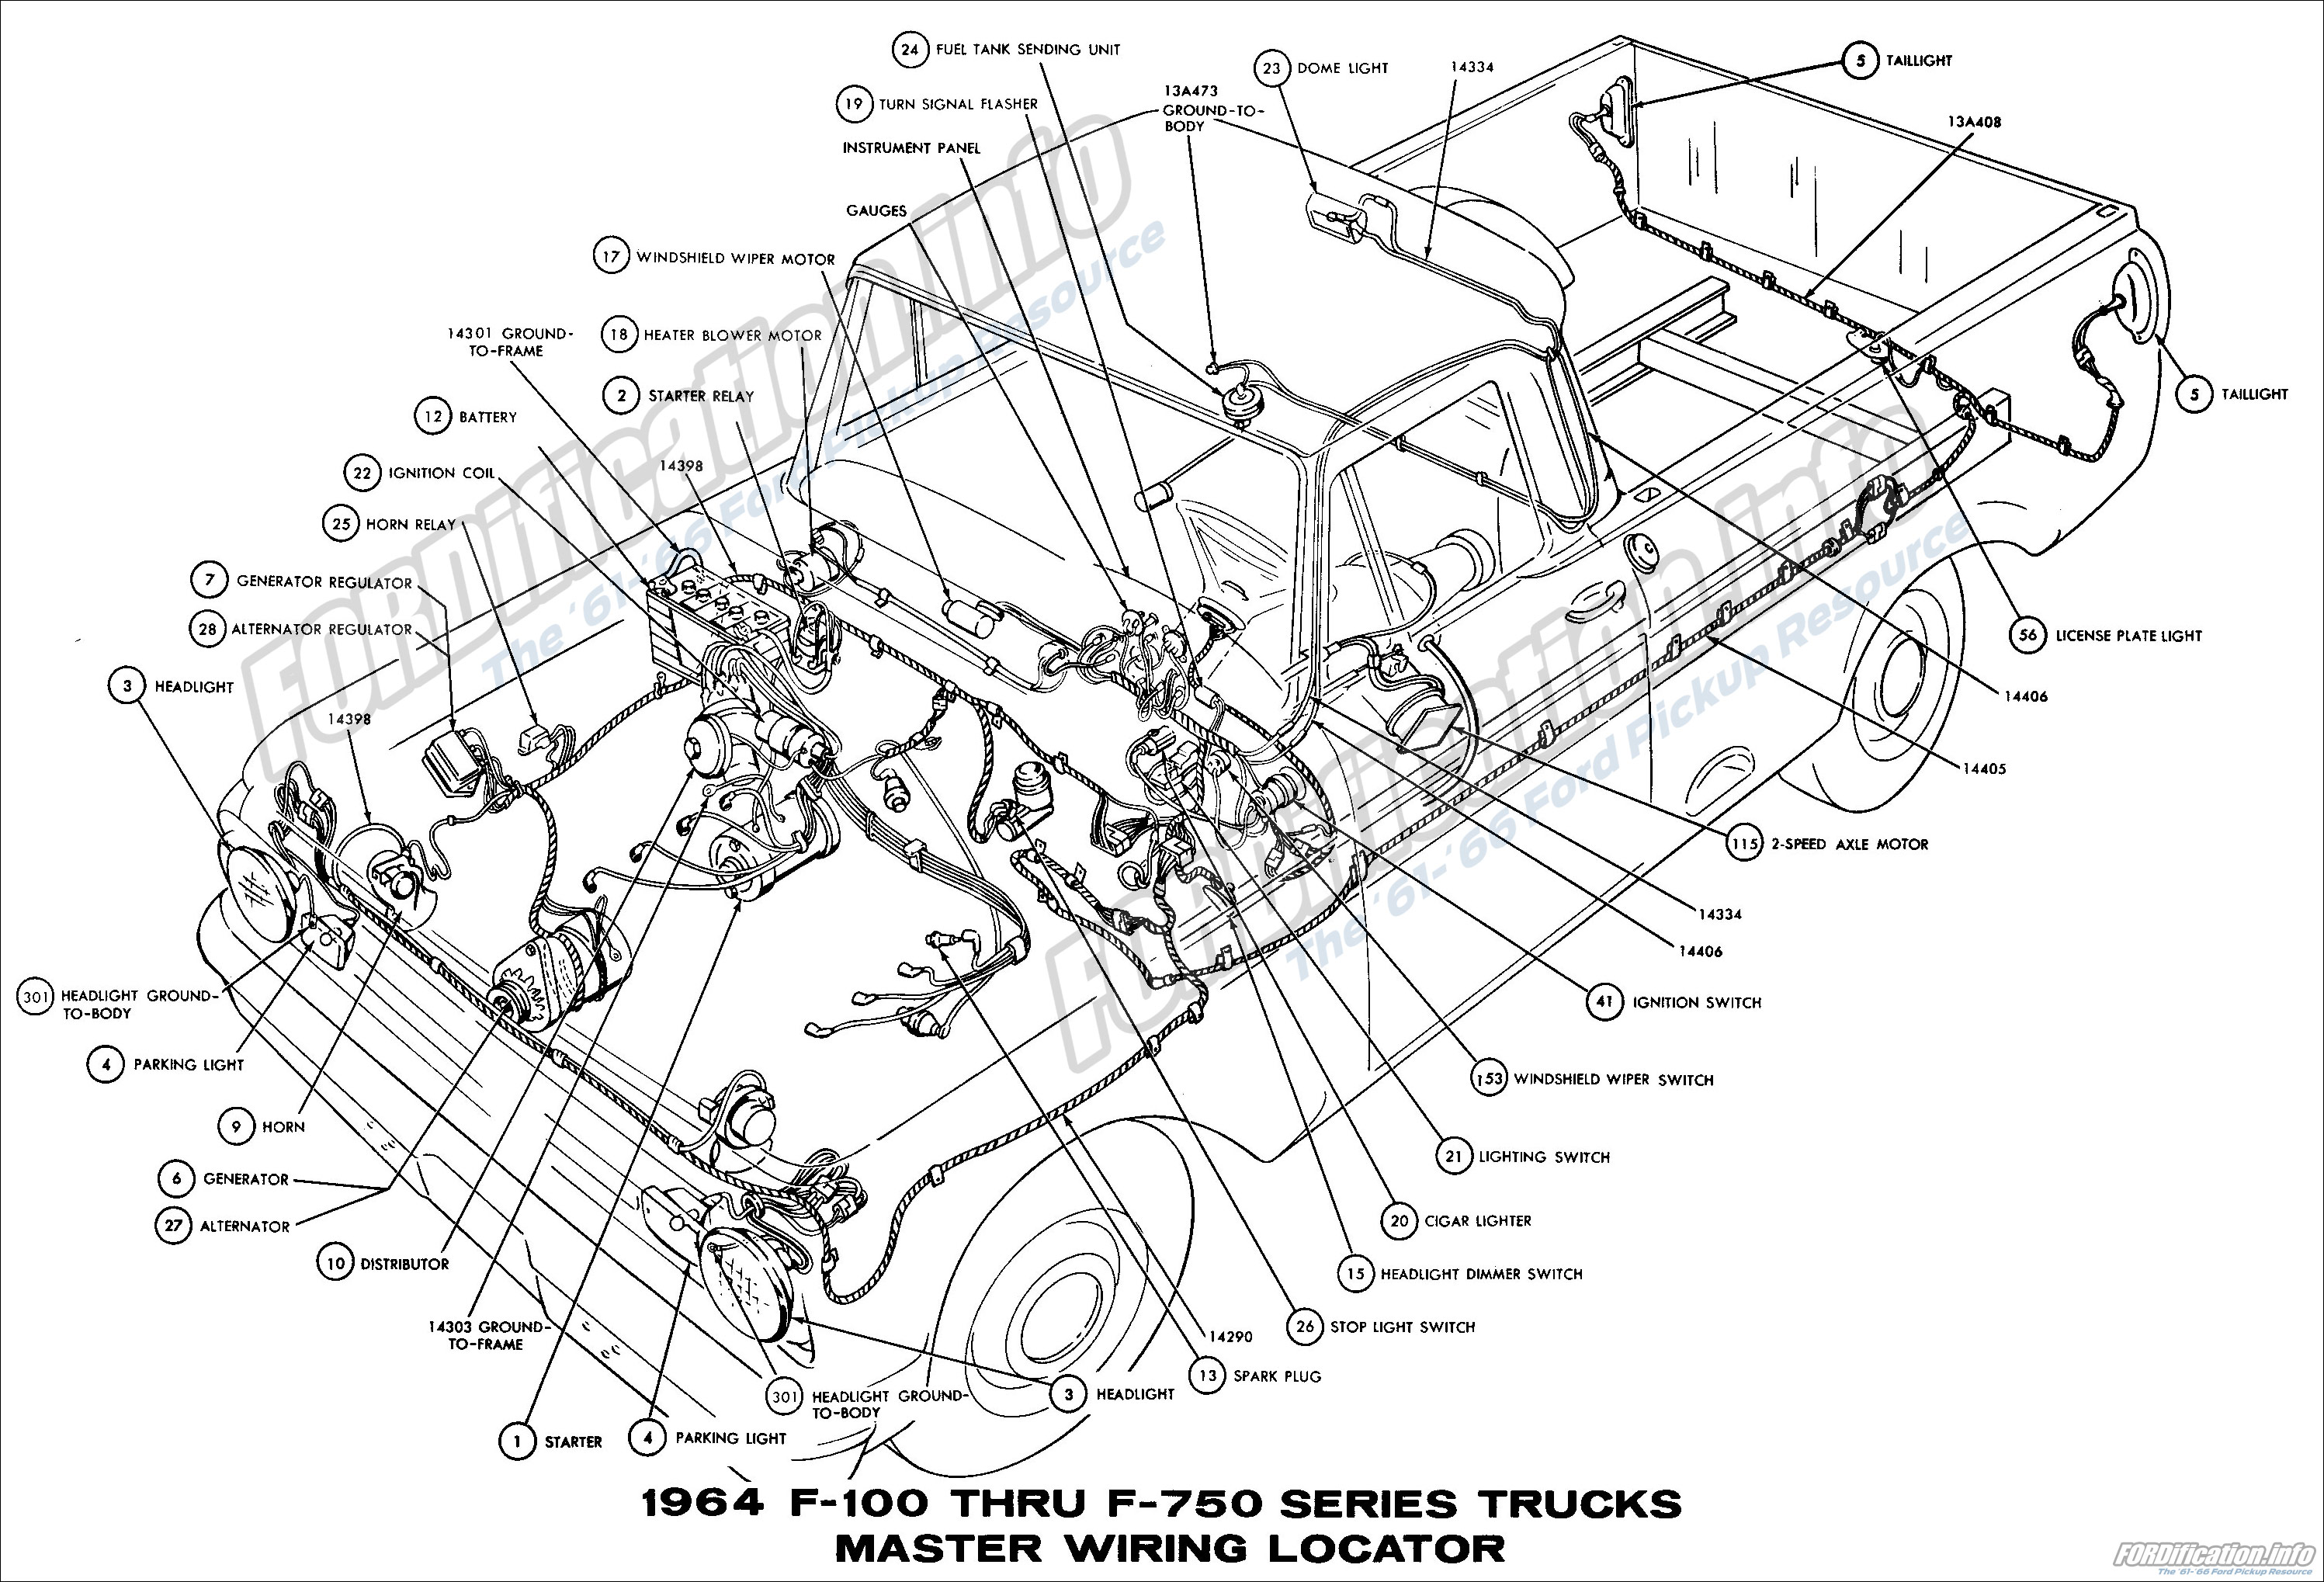 Wiring Diagram For 1963 Ford Econoline Dimmer Switch : 52